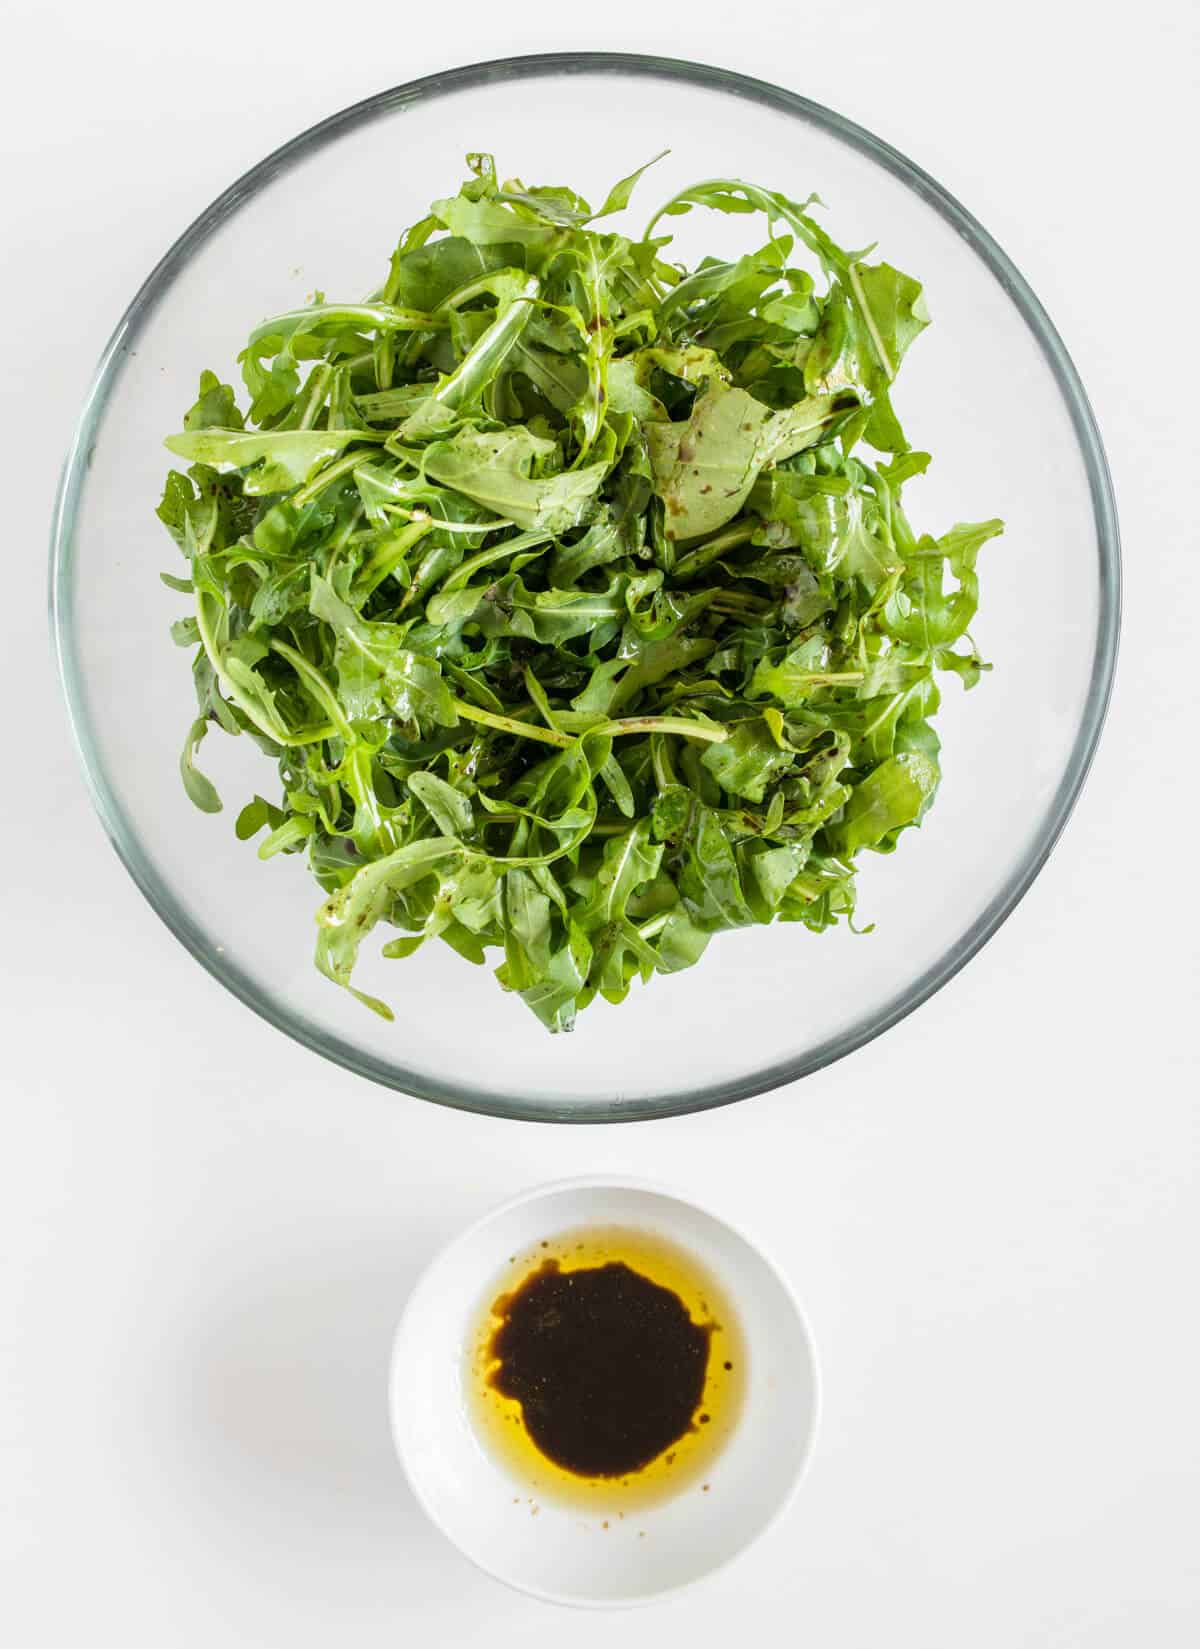 Rocket salad mixed with dressing in a bowl with small bowl of additional dressing